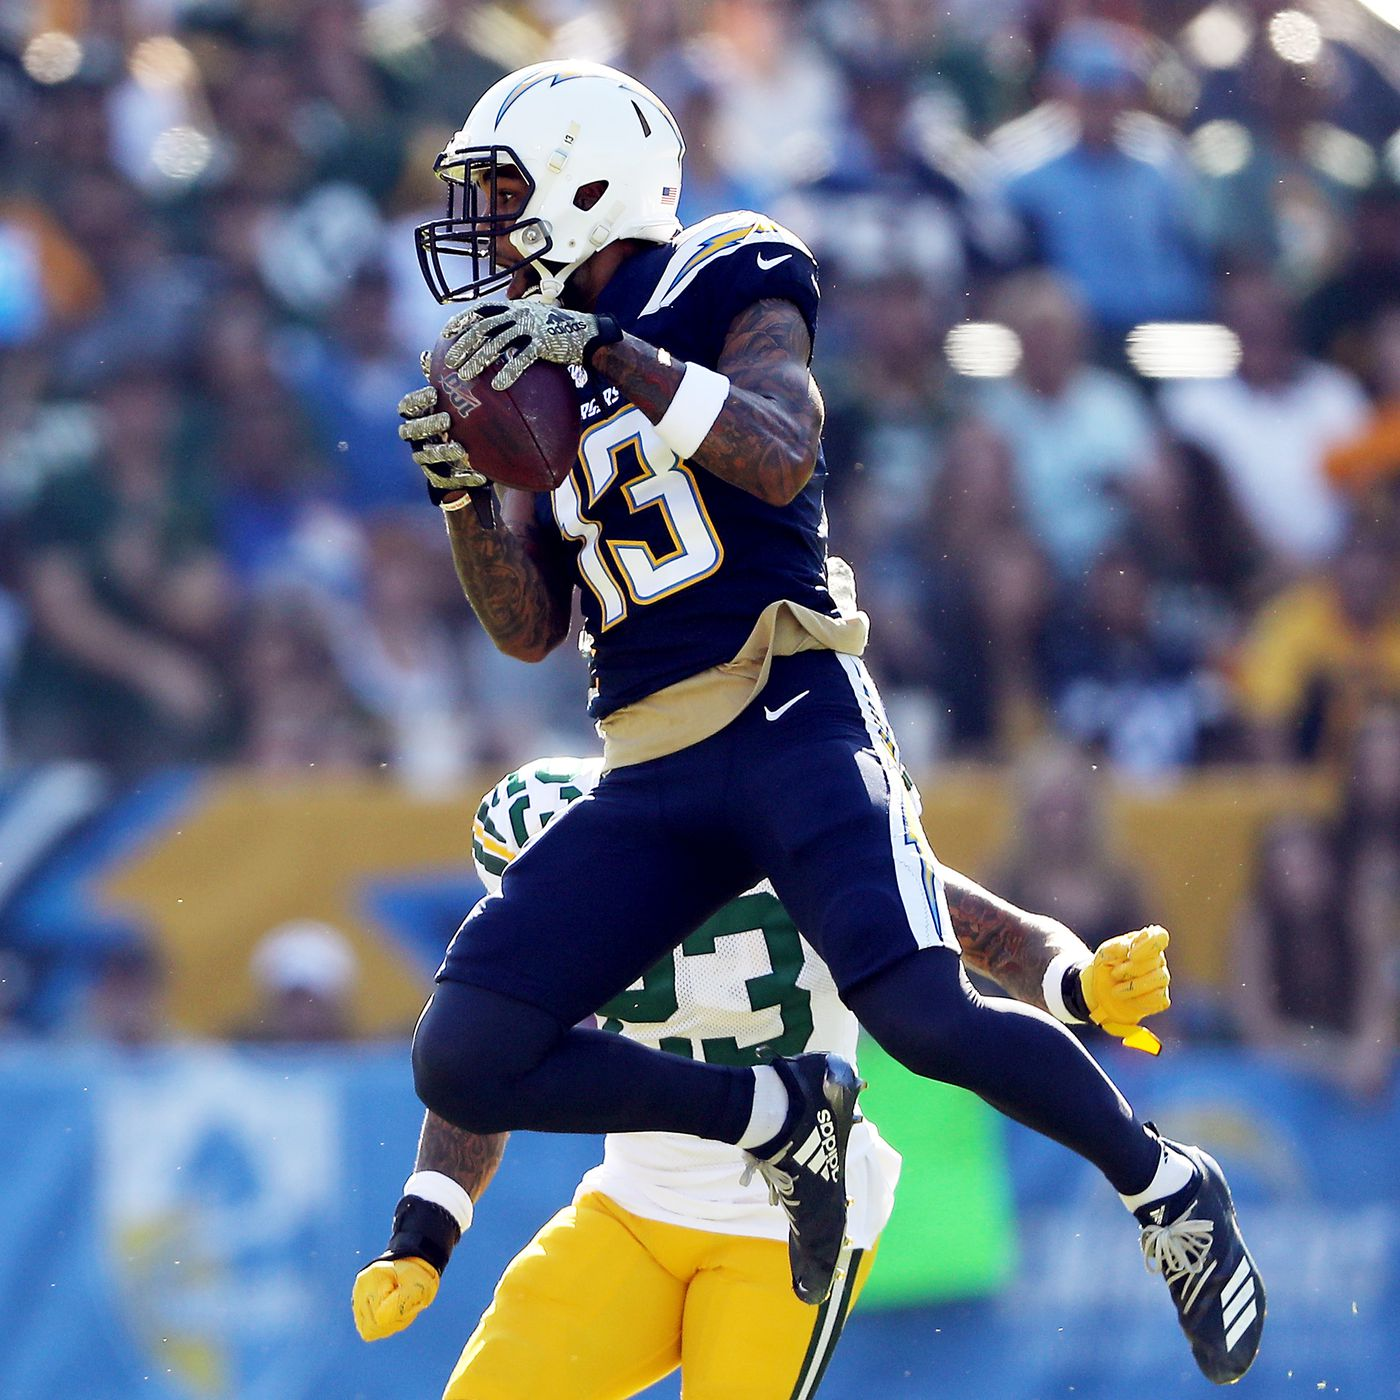 Chargers Packers Final Score Los Angeles Chargers Defeat The Green Bay Packers 26 11 Bolts From The Blue